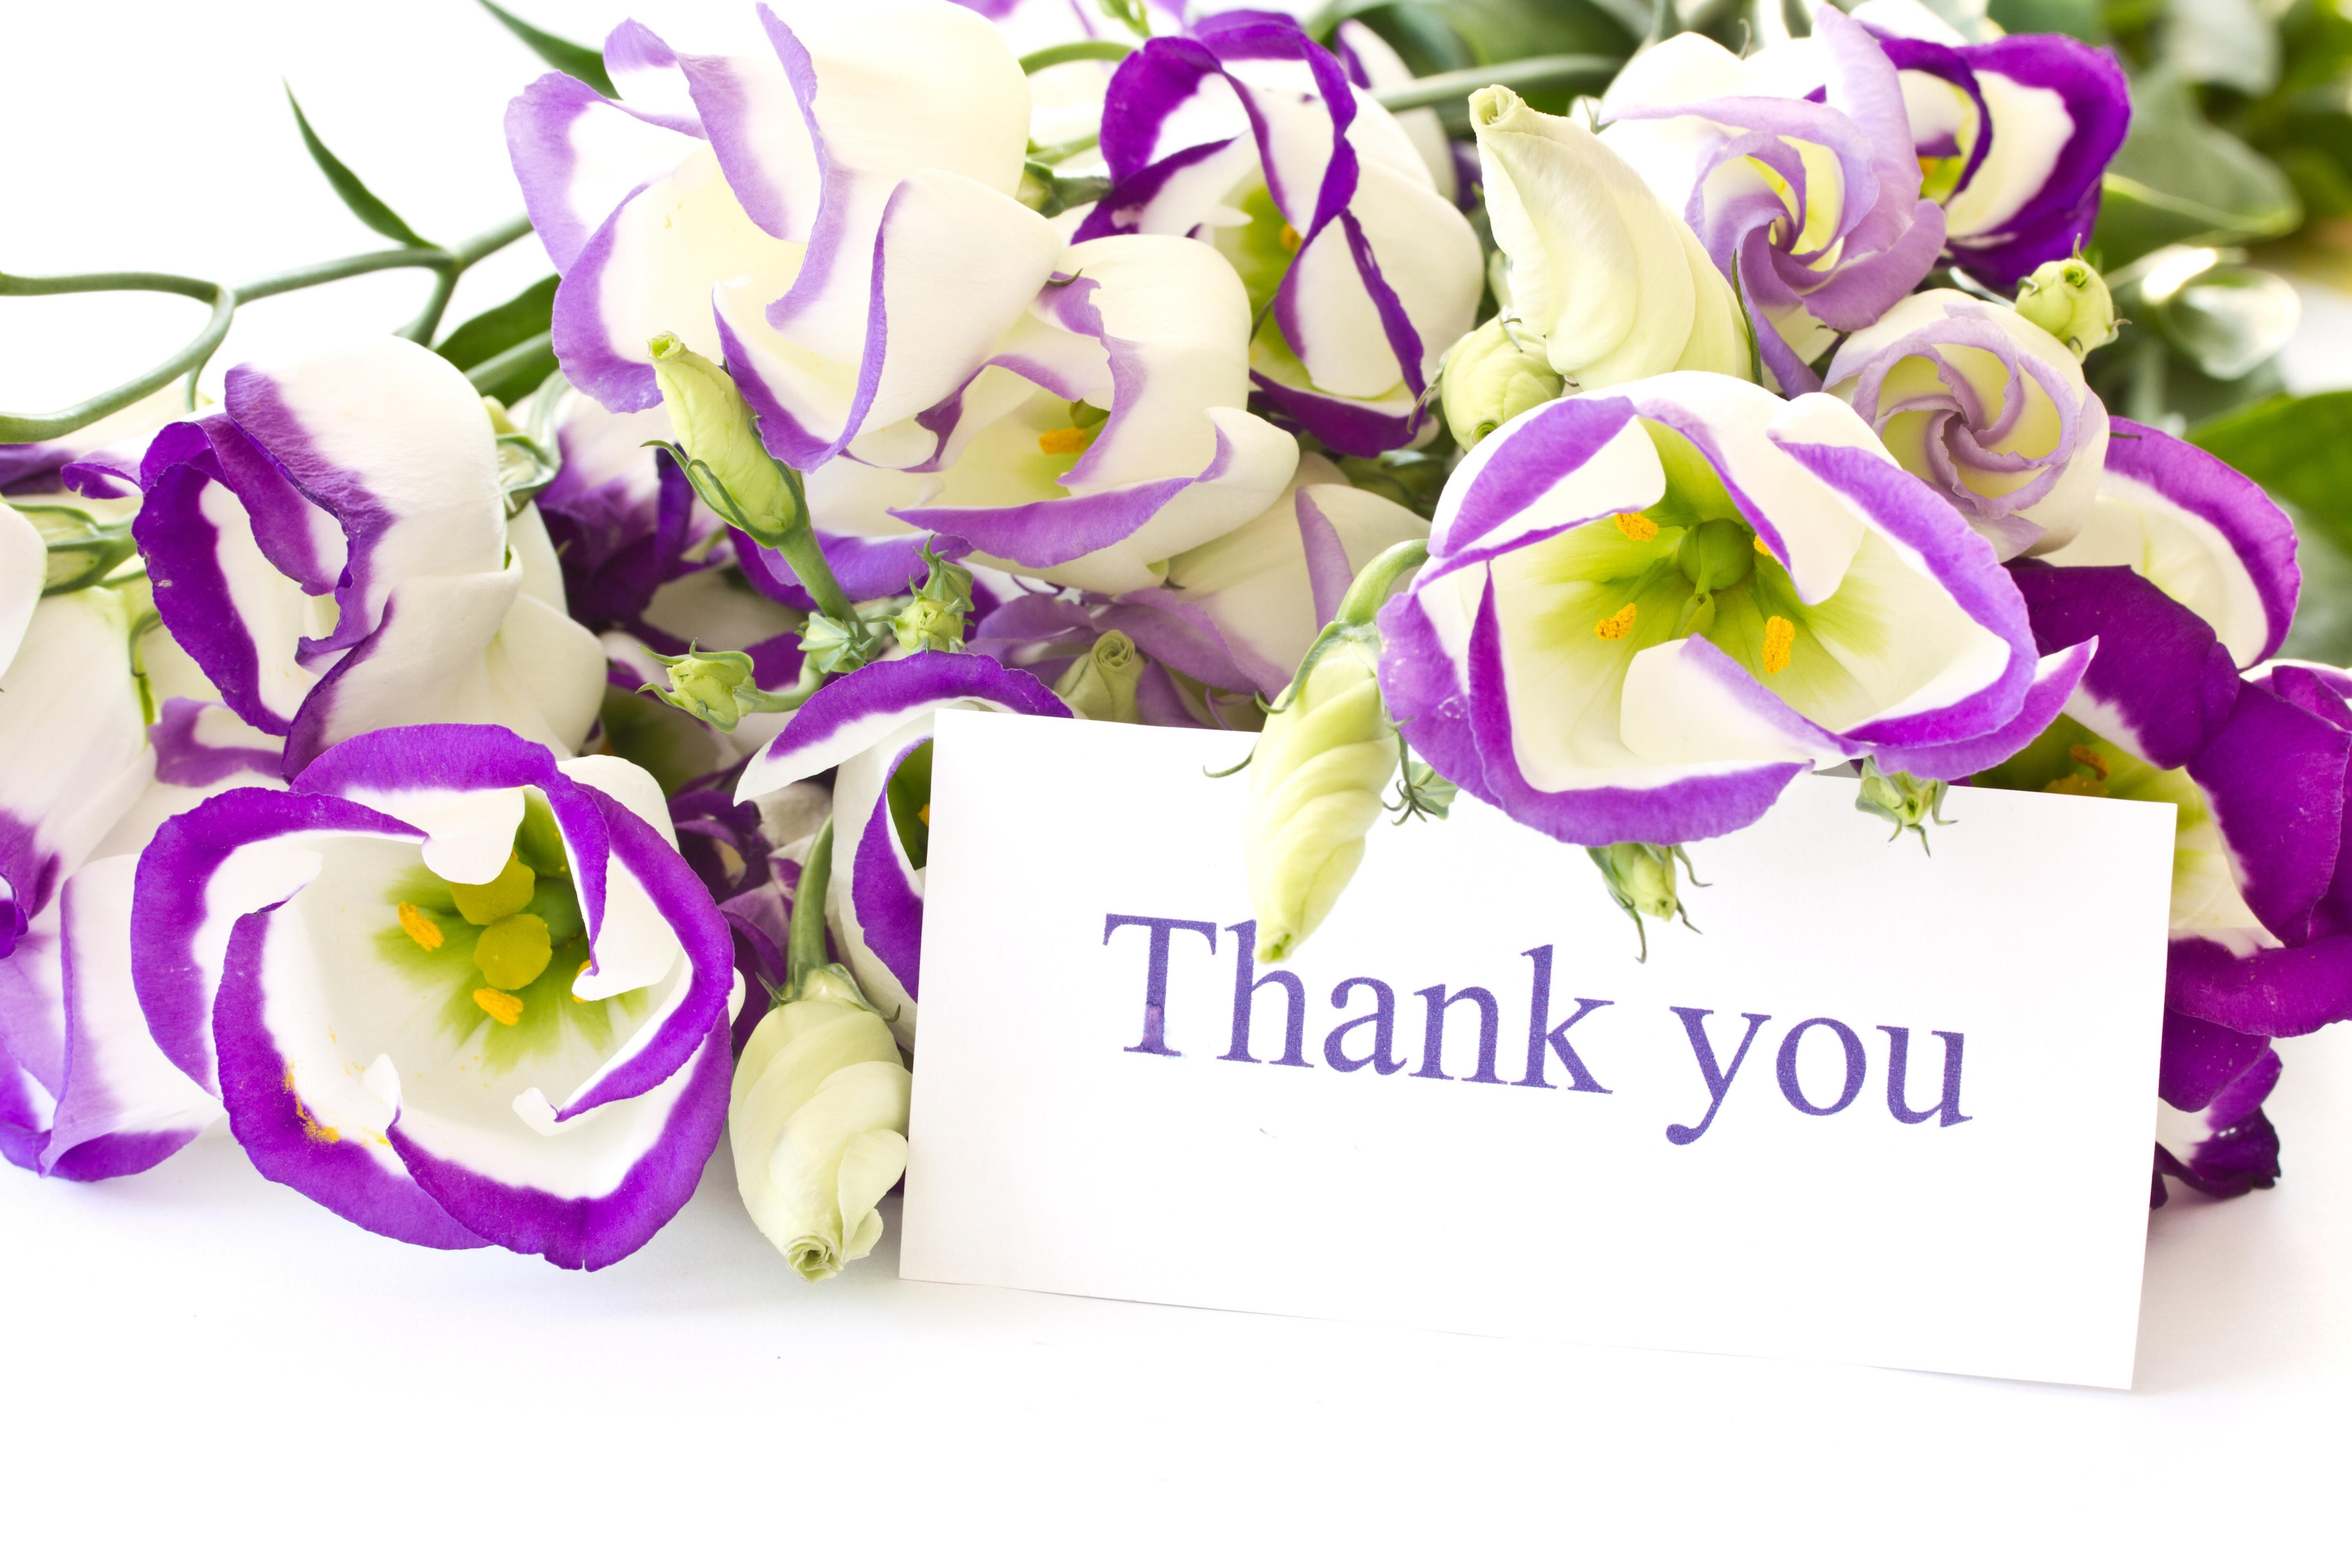 Images of thank you flowers wallpaper picture with hd wallpaper images of thank you flowers wallpaper picture with hd wallpaper 5830x3887 px 117 mb kristyandbryce Choice Image